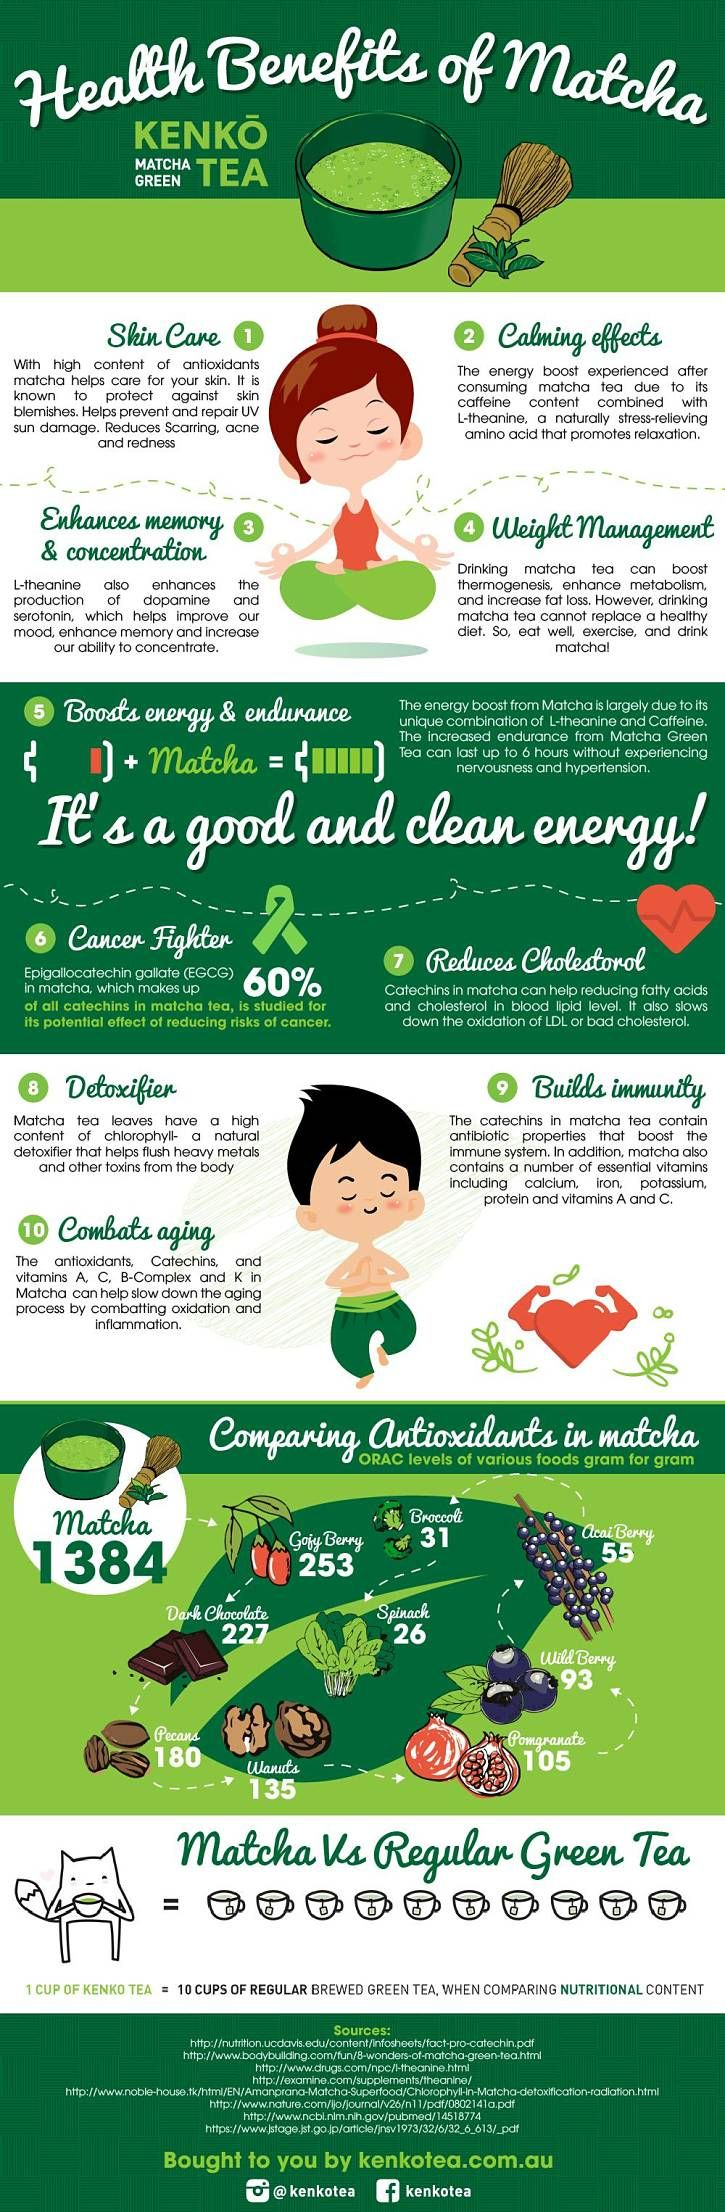 Matcha Green Tea Health benefits Explained! Get your matcha at: http://amzn.to/297Wuxo